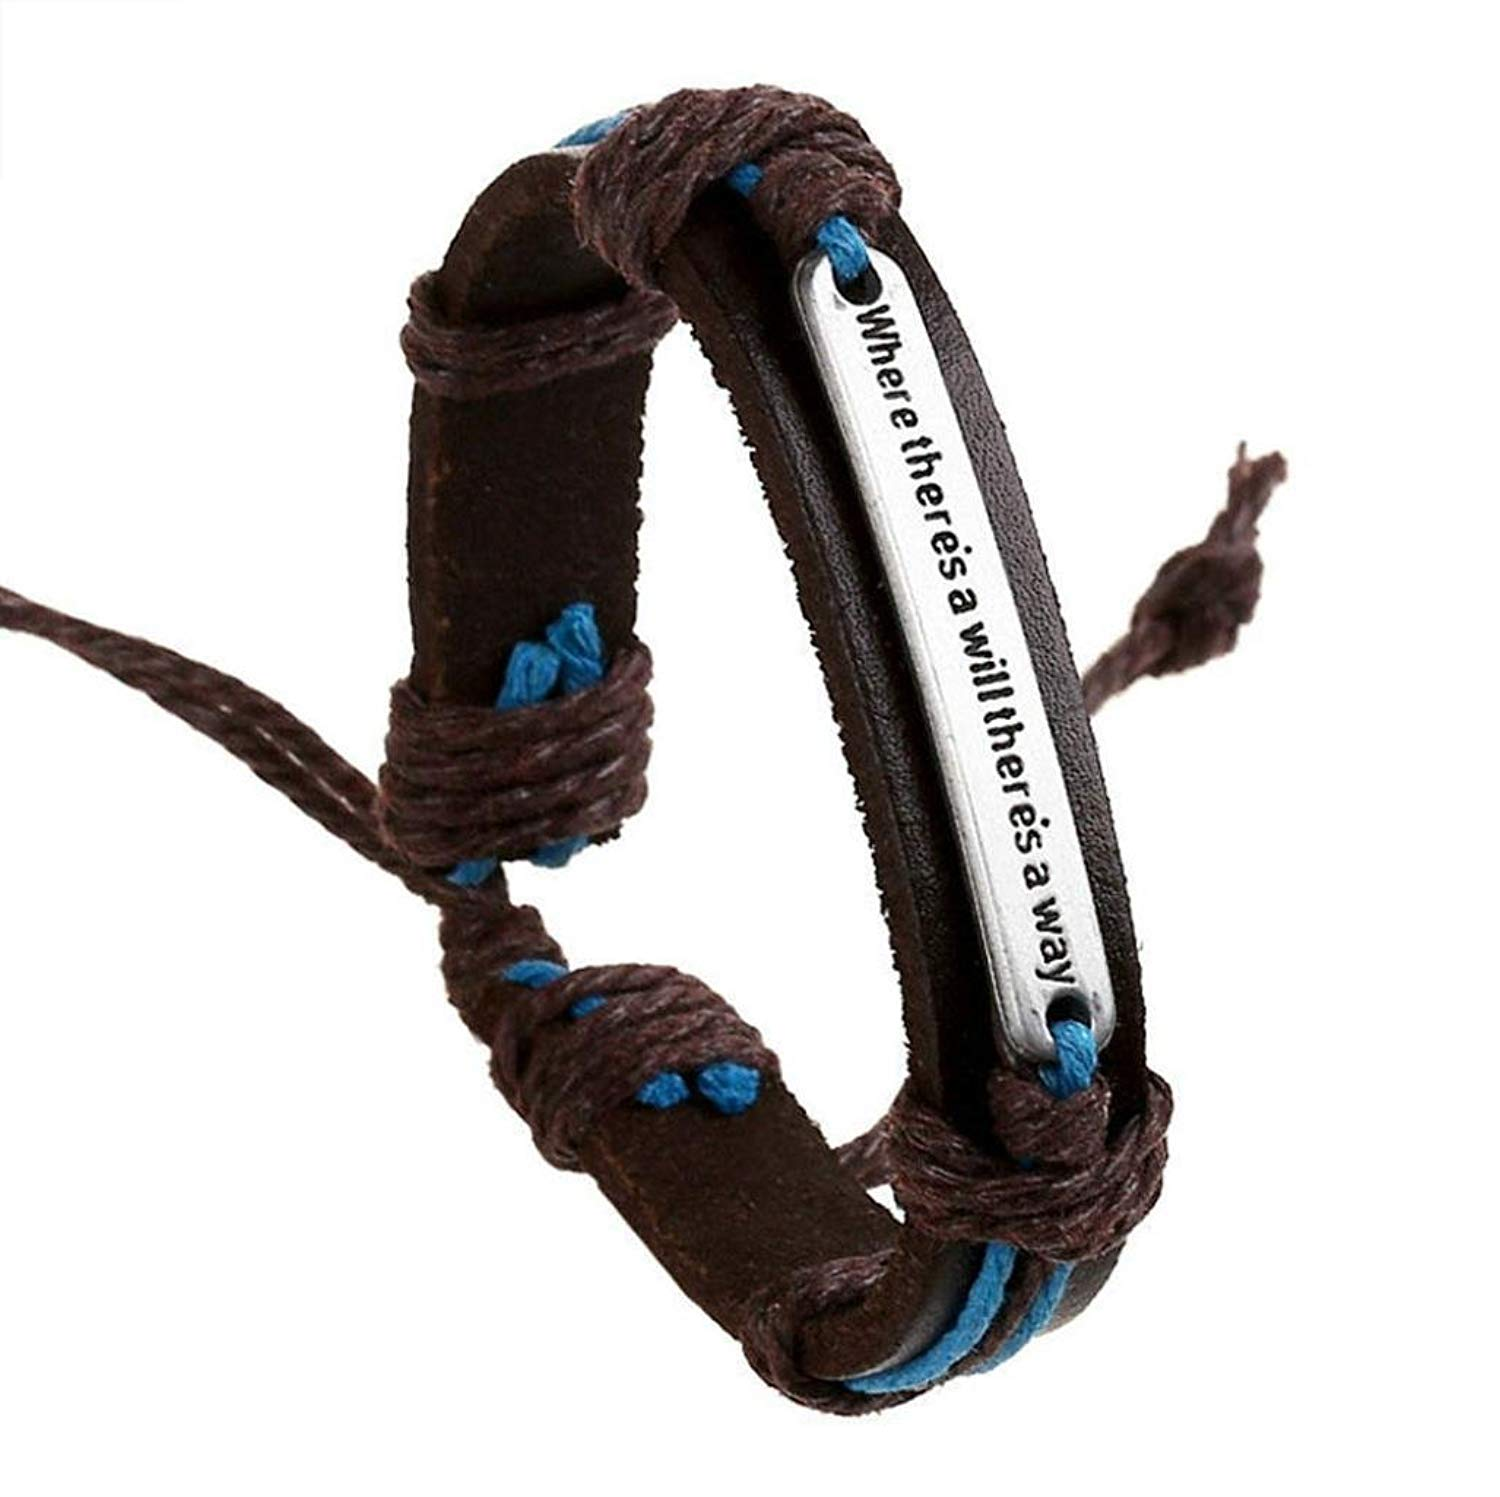 """Vibola """"where theres a will theres a way""""English Punk Retro Fashion Bracelet Cowhide Alloy Hemp Rope Bracelet"""